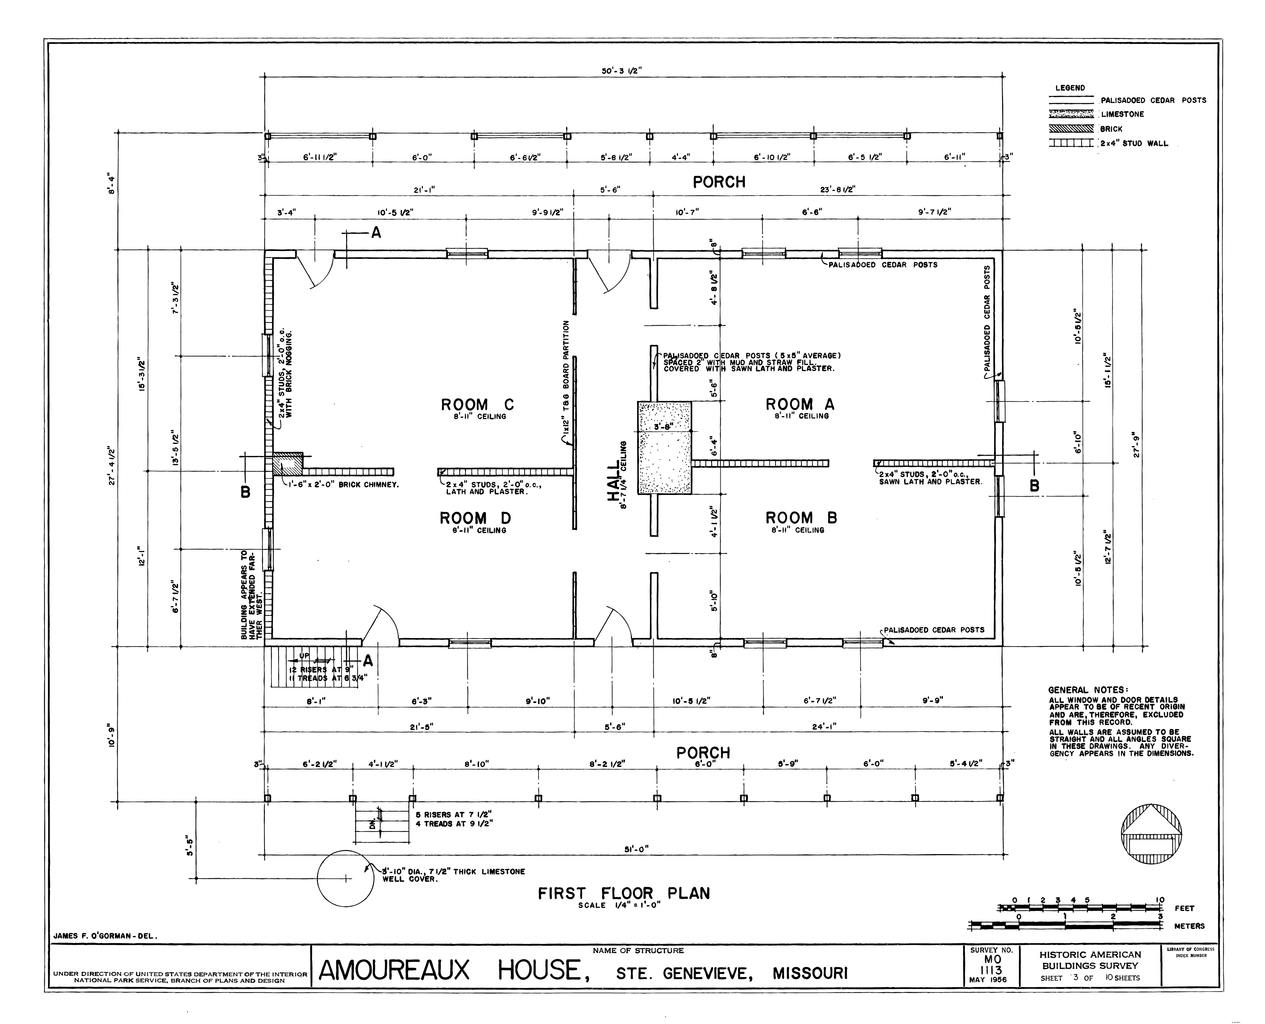 File:Drawing Of The First Floor Plan   Amoureaux House In Ste Genevieve  MO.png